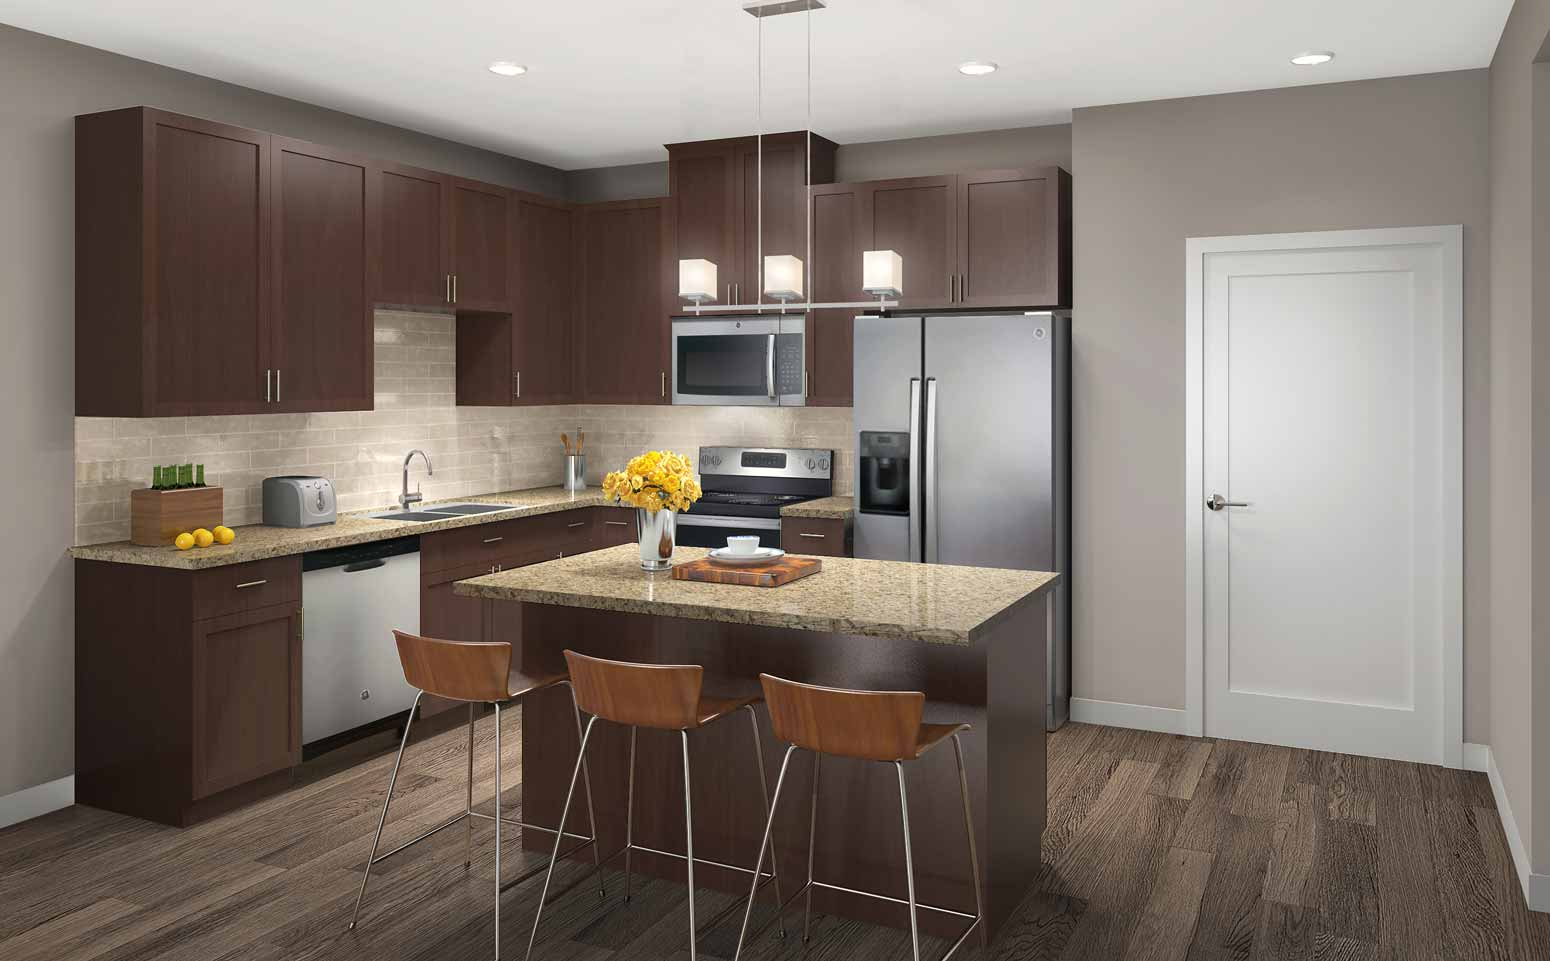 Woodland design scheme features warm, cherry wood cabinetry and light granite countertops.